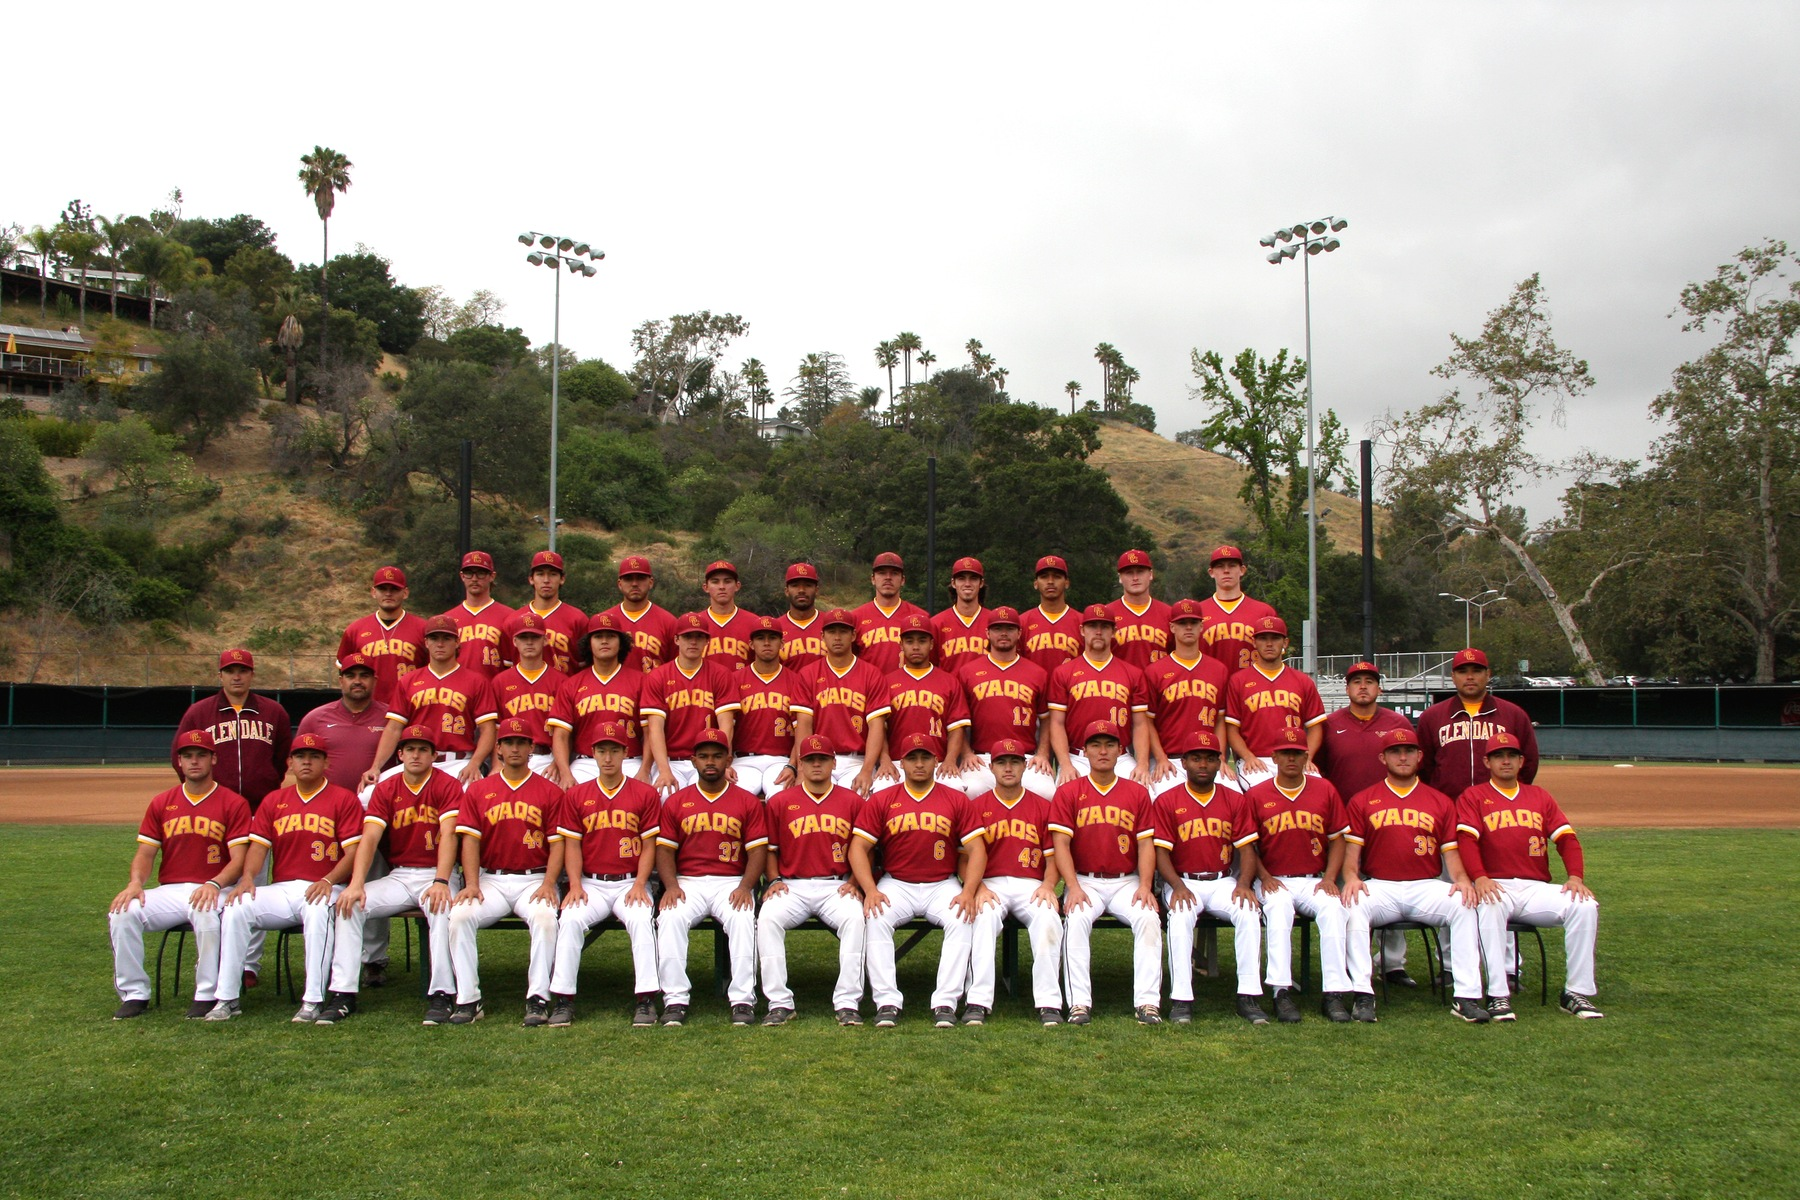 2018 GCC Baseball Season ends with losses in So. Cal Super Regionals